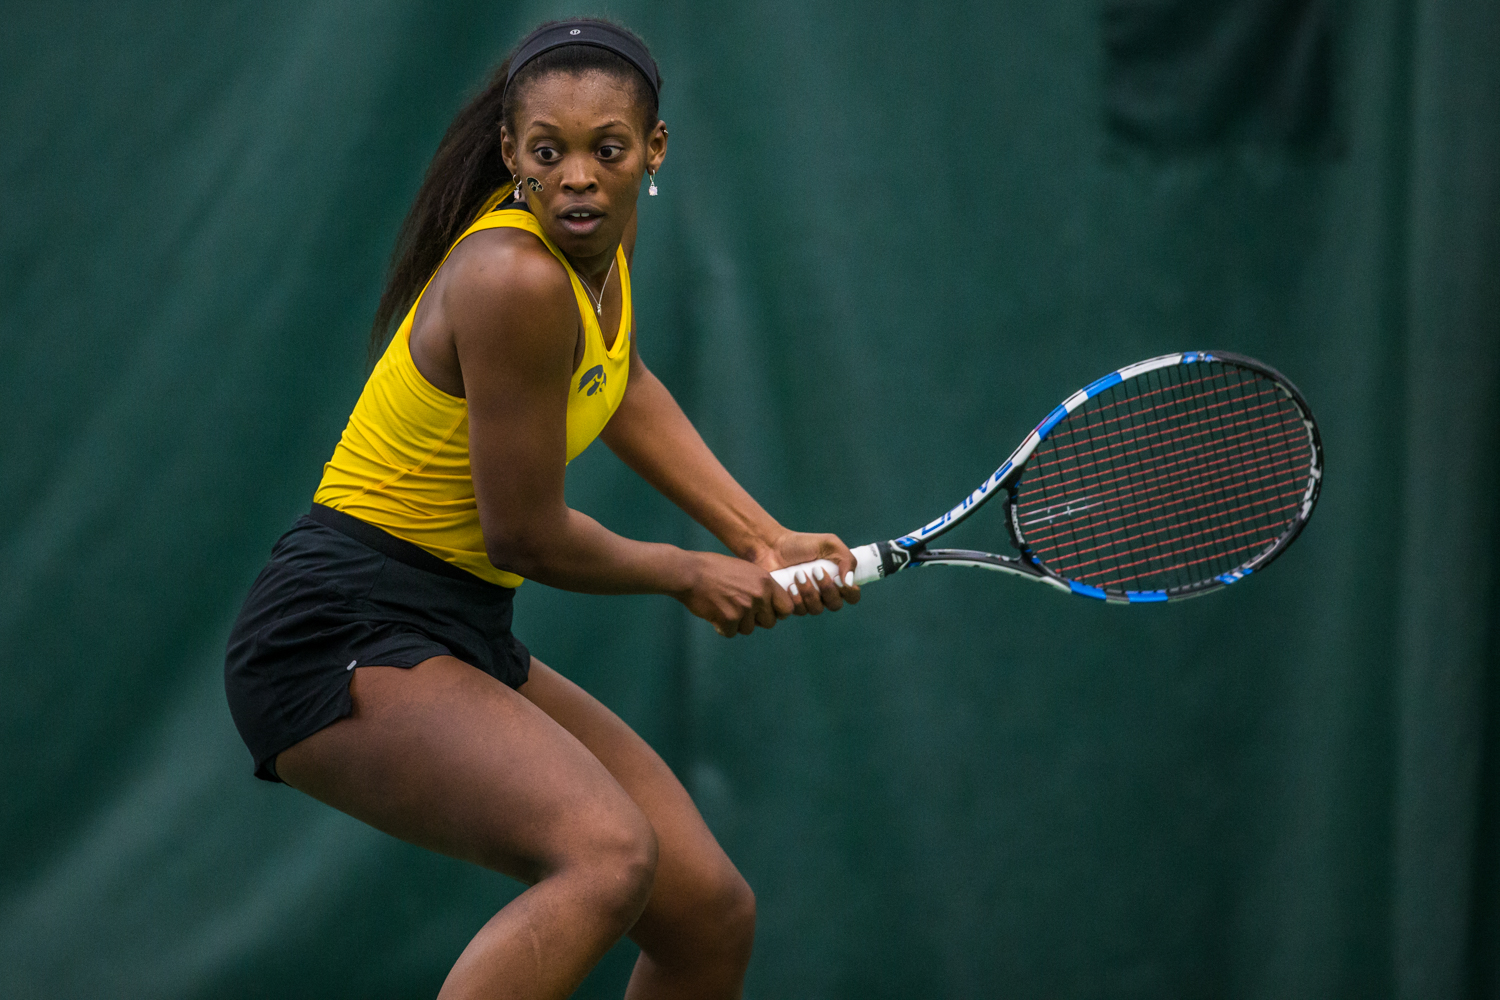 Iowa's Adorabol Huckleby hits a backhand during a women's tennis matchup between Iowa and Iowa State at the Hawkeye Tennis and Recreation Complex on Friday, February 8, 2019.  The Hawkeyes dropped the doubles point but swept singles matches, defeating the Cyclones 4-1.